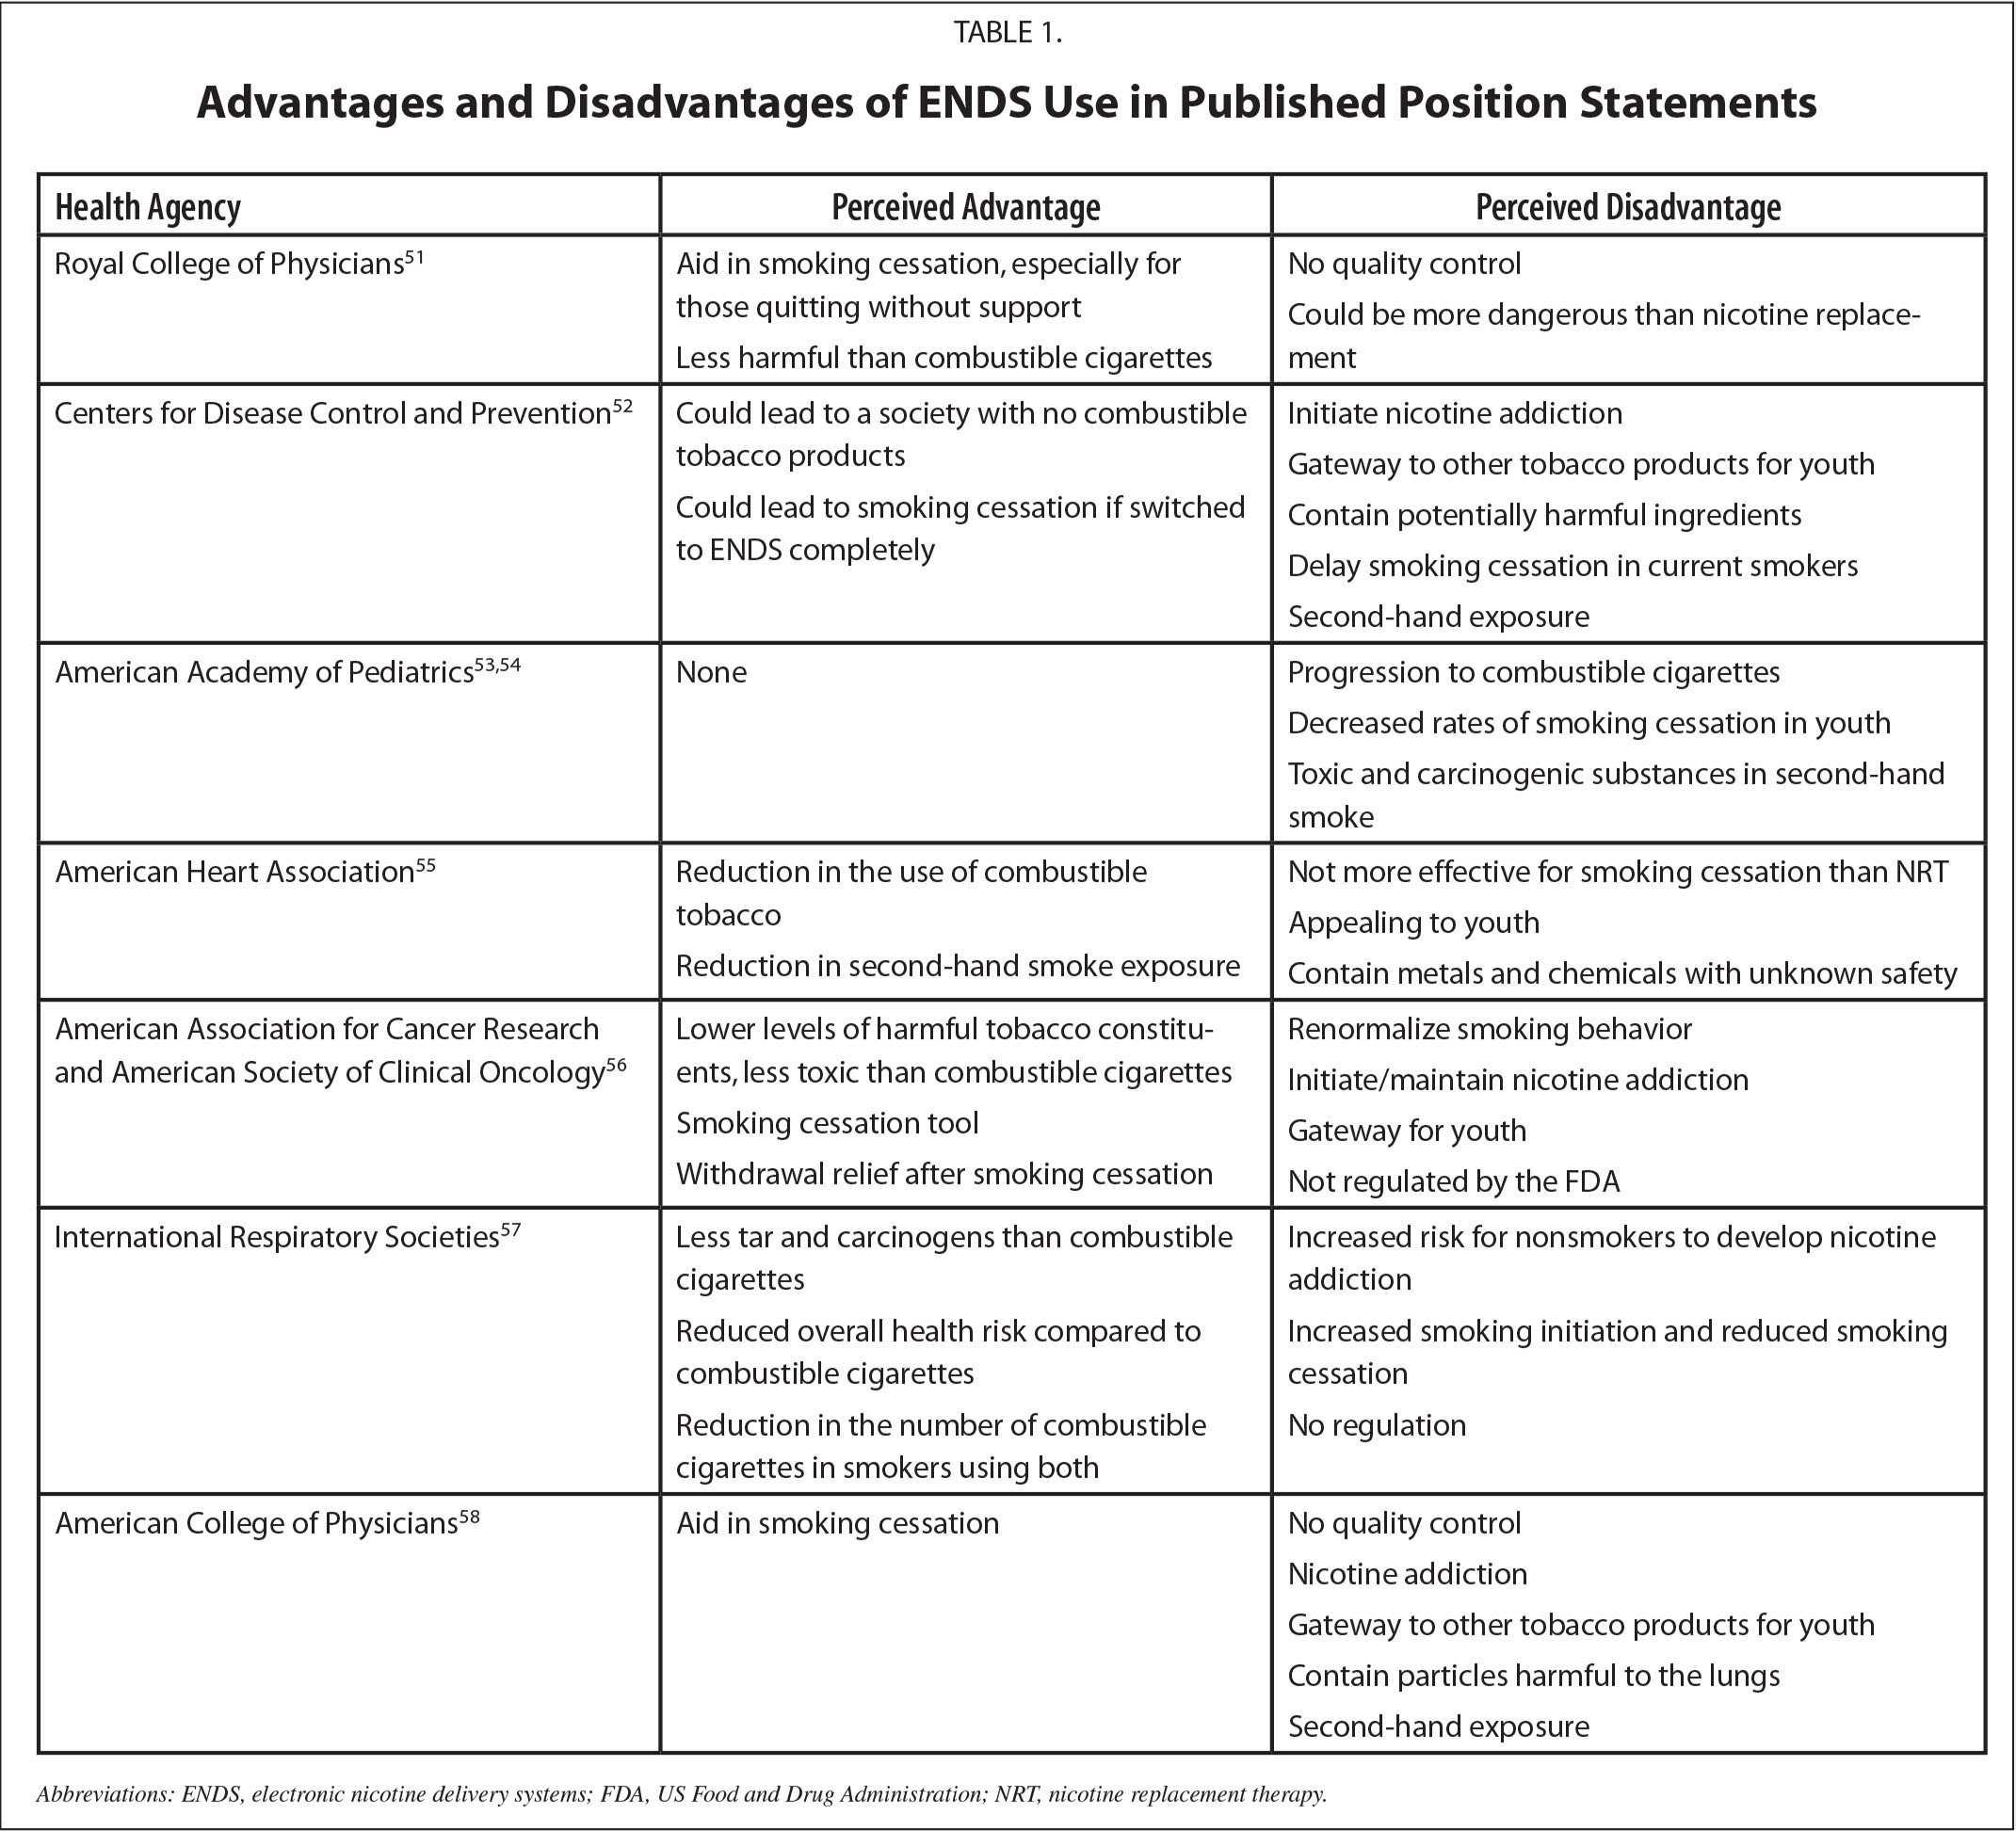 Advantages and Disadvantages of ENDS Use in Published Position Statements